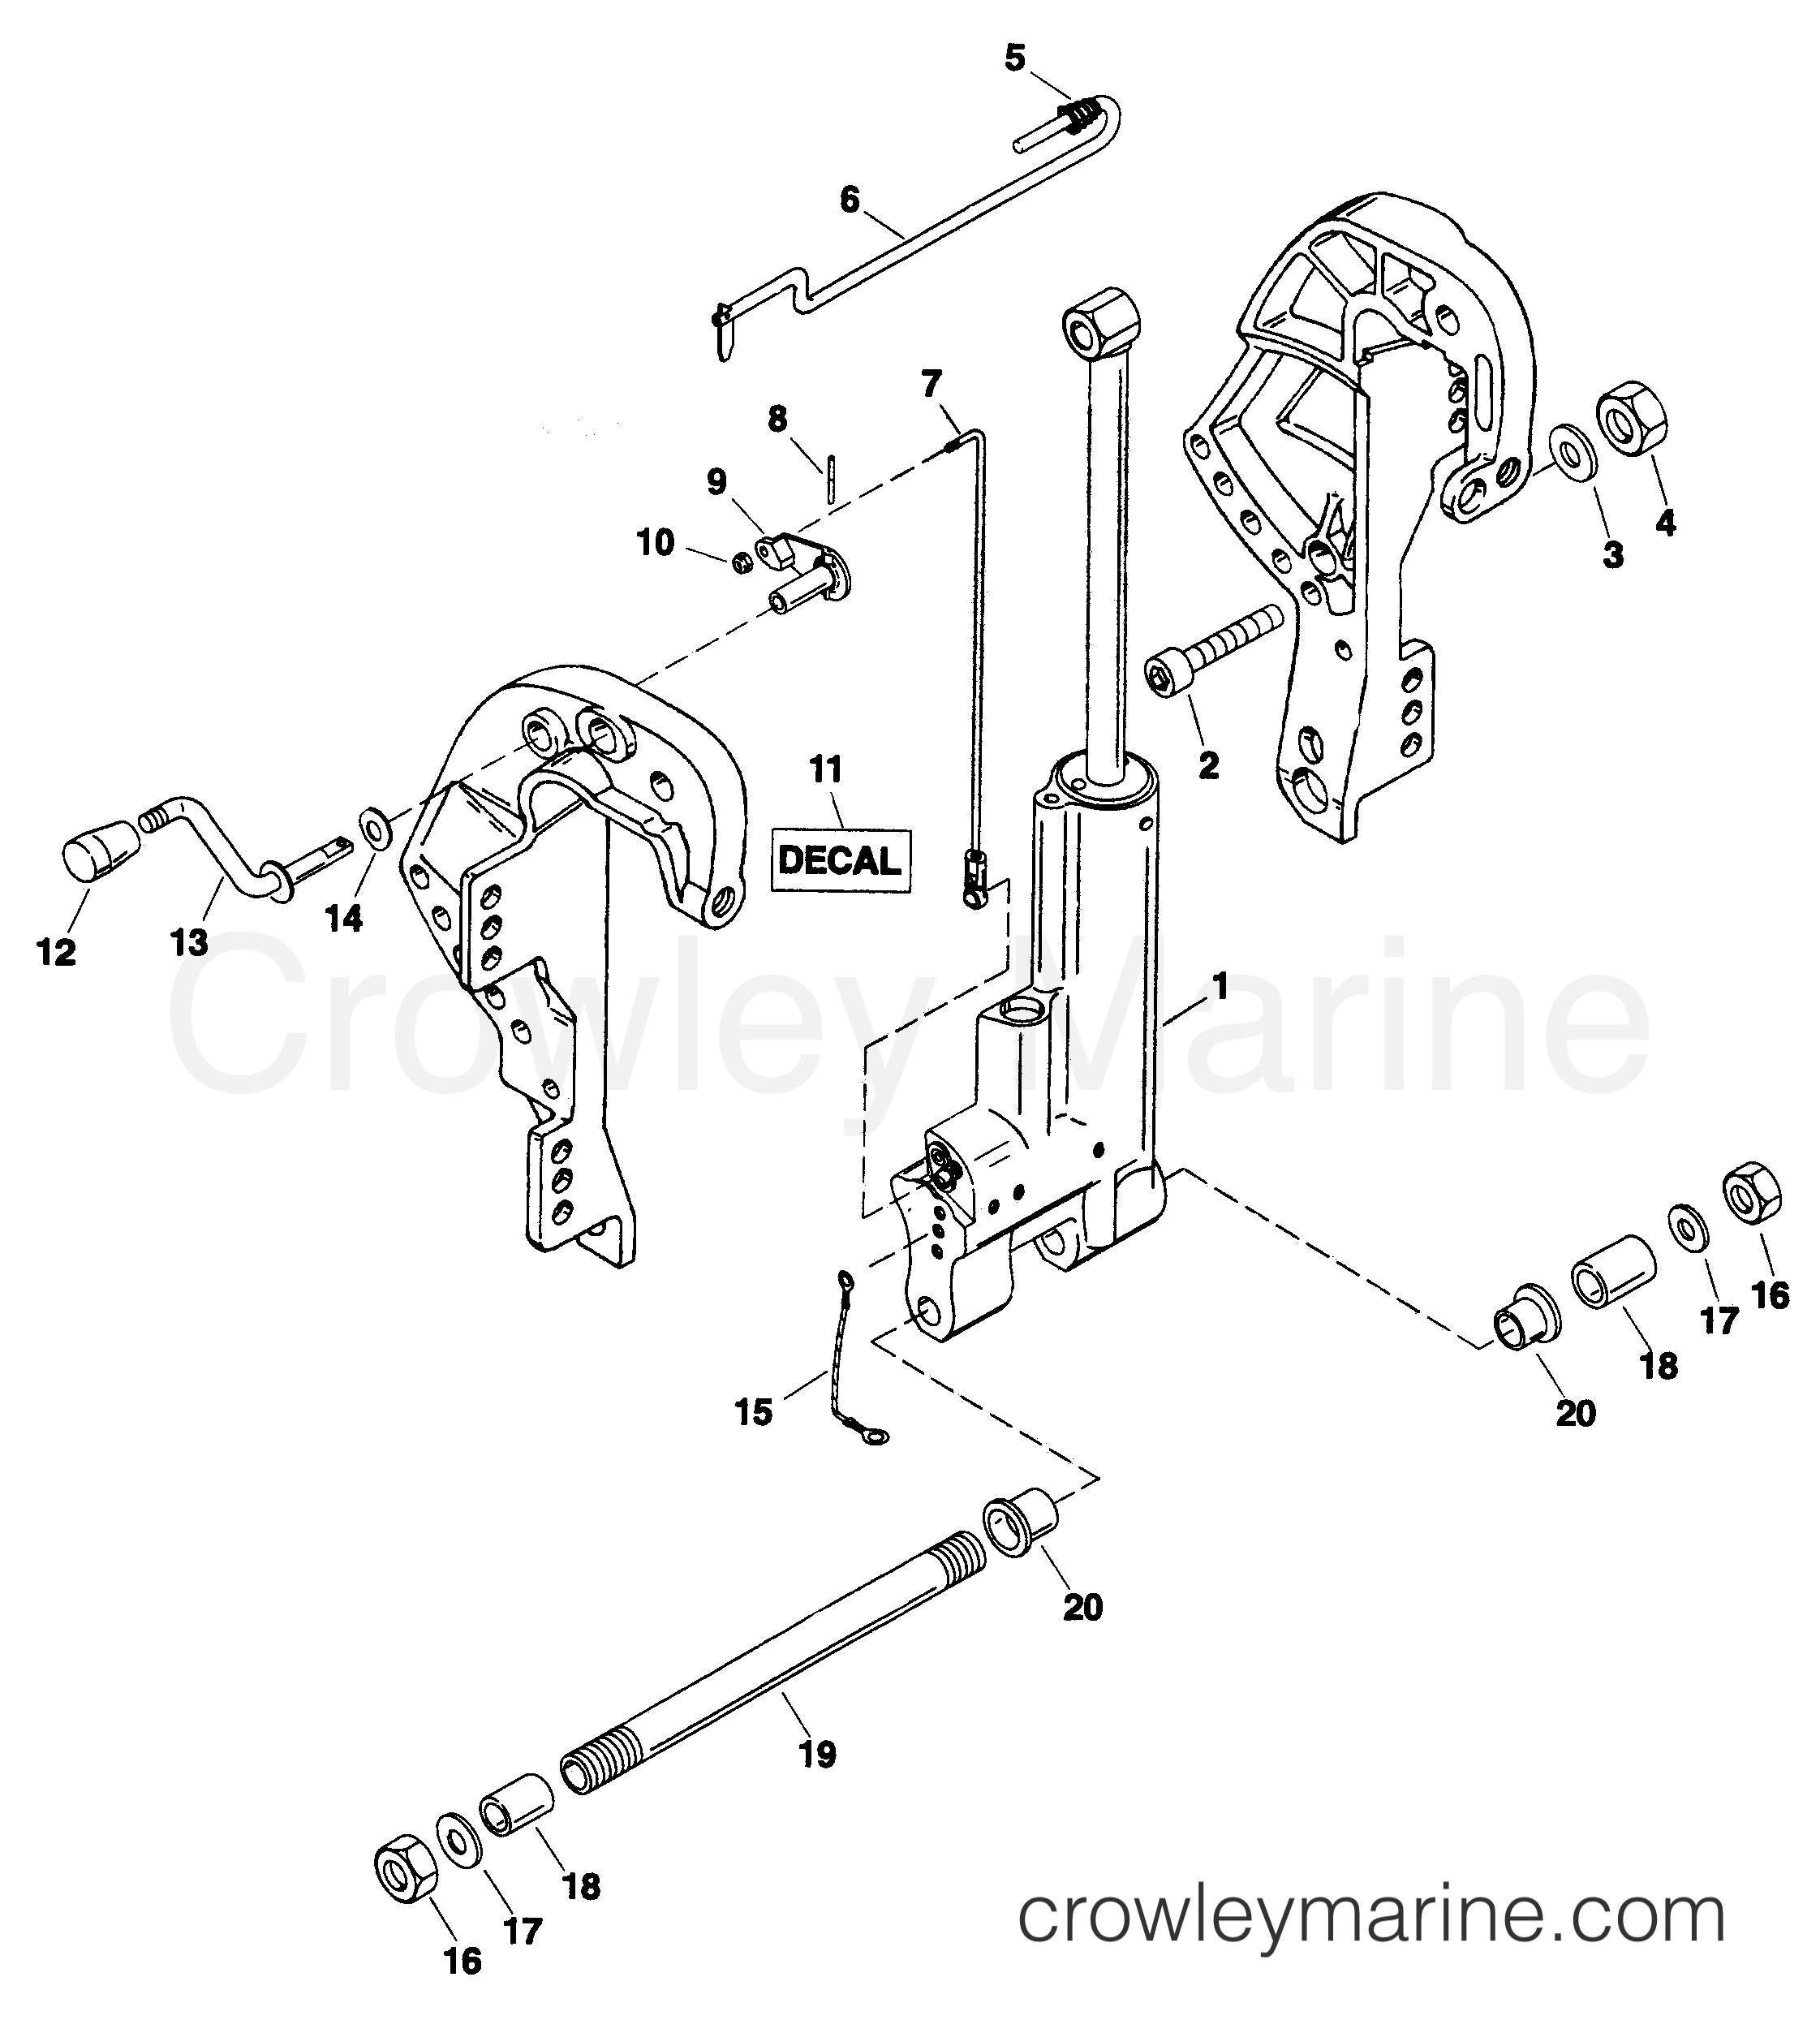 Wiring Diagram For 50 Hp Johnson Outboard Ignition